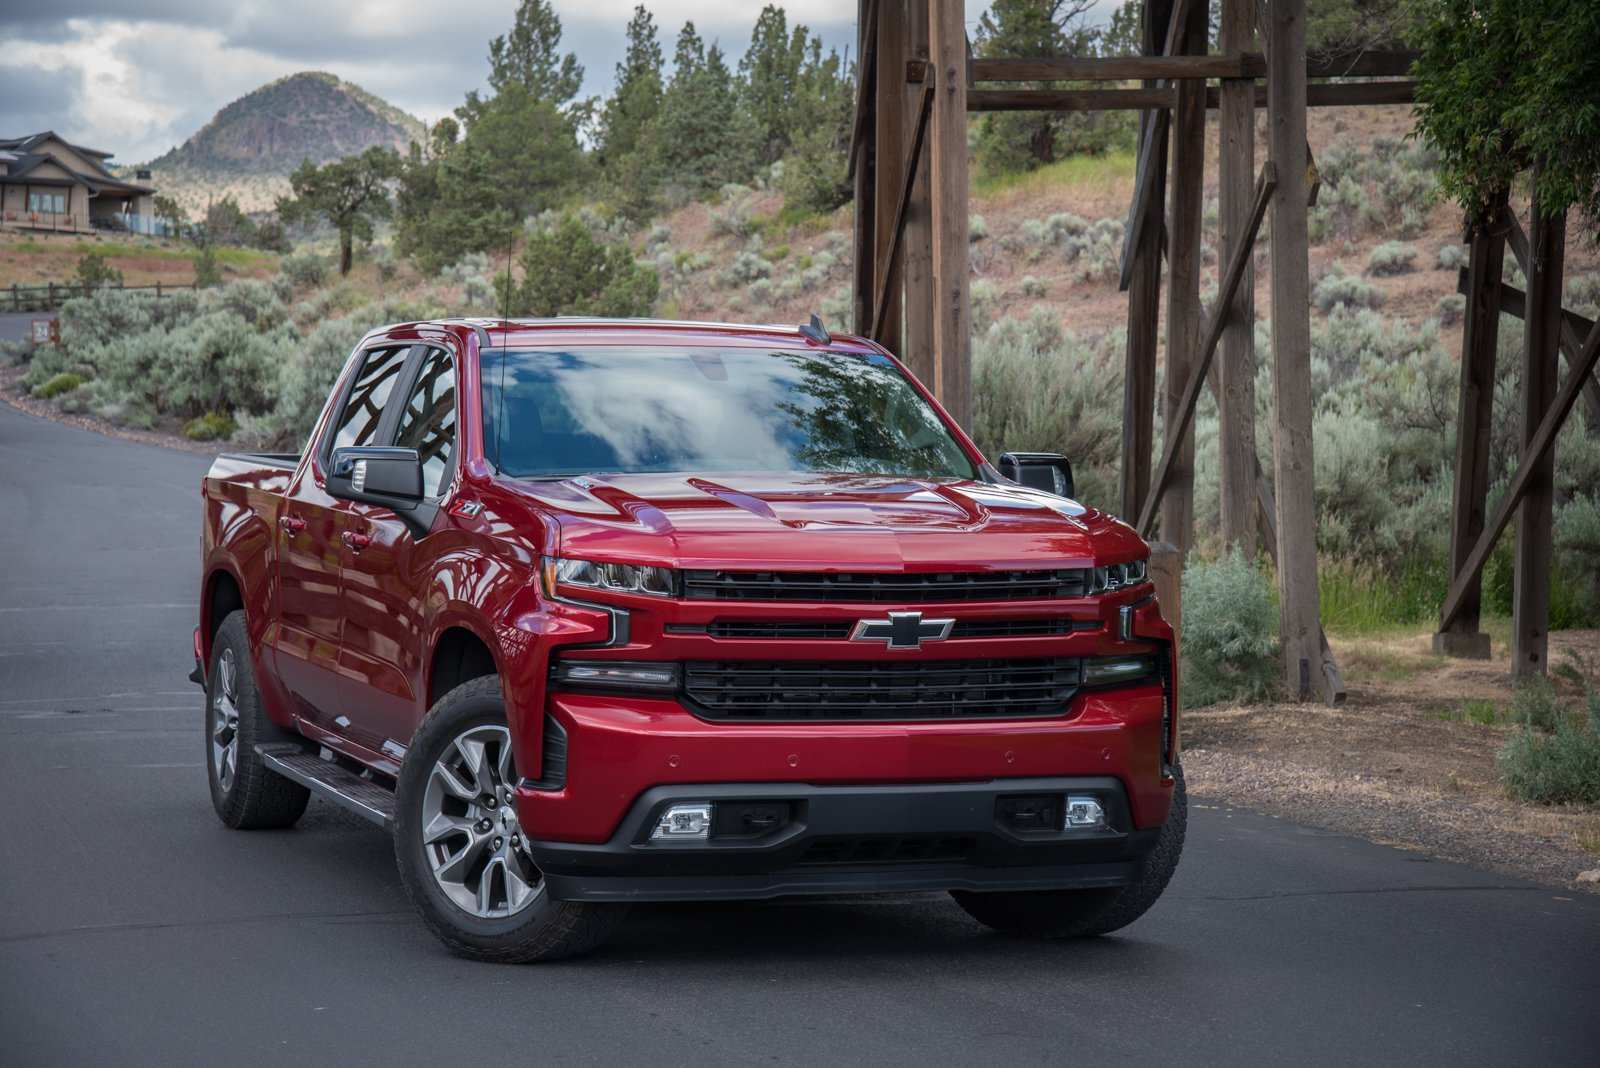 38 New 2020 Chevrolet Silverado Concept And Review